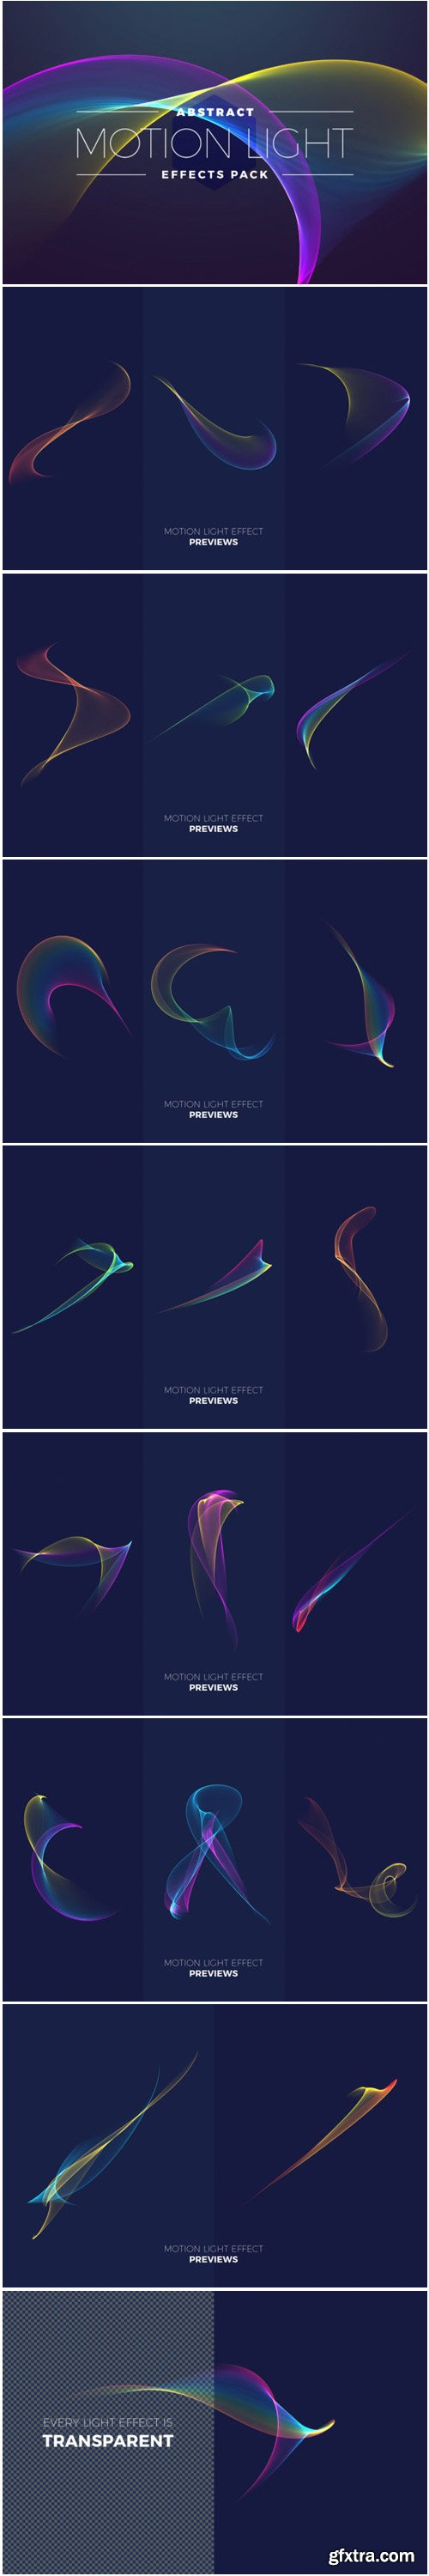 Abstract Motion Light Effects Pack 1705576